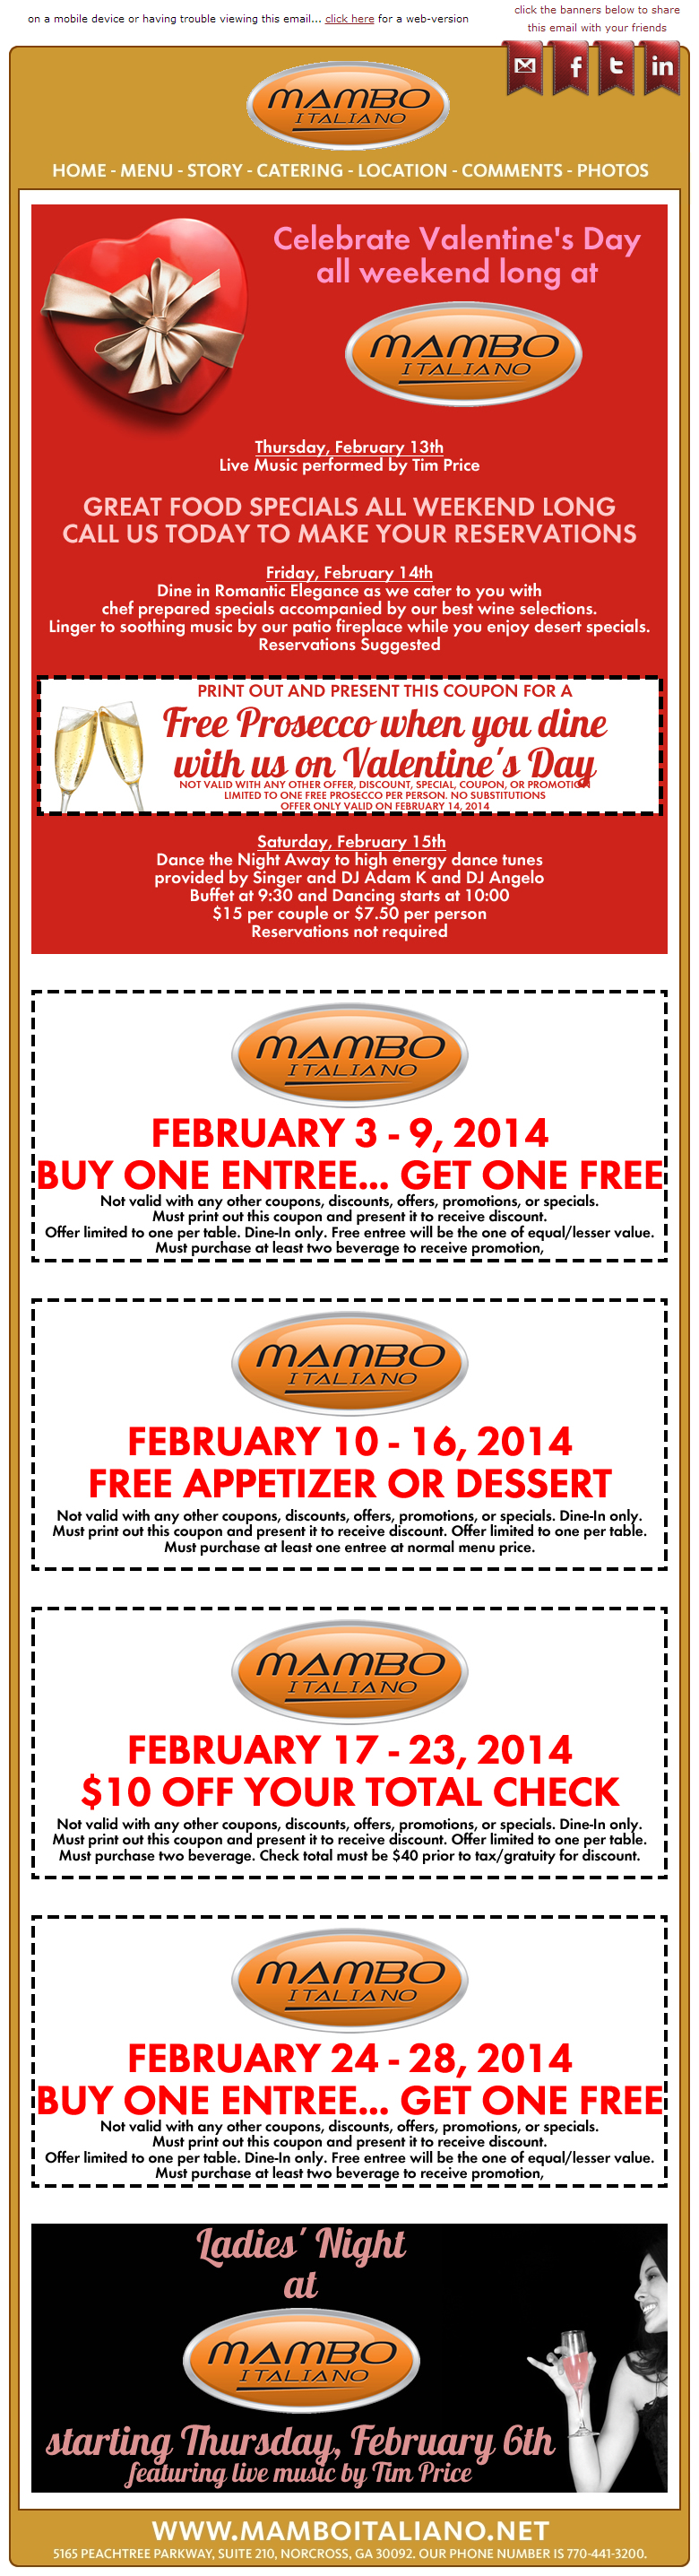 email - Webview - Valentine's Weekend and Special Offers from Mambo Italiano.clipular.png